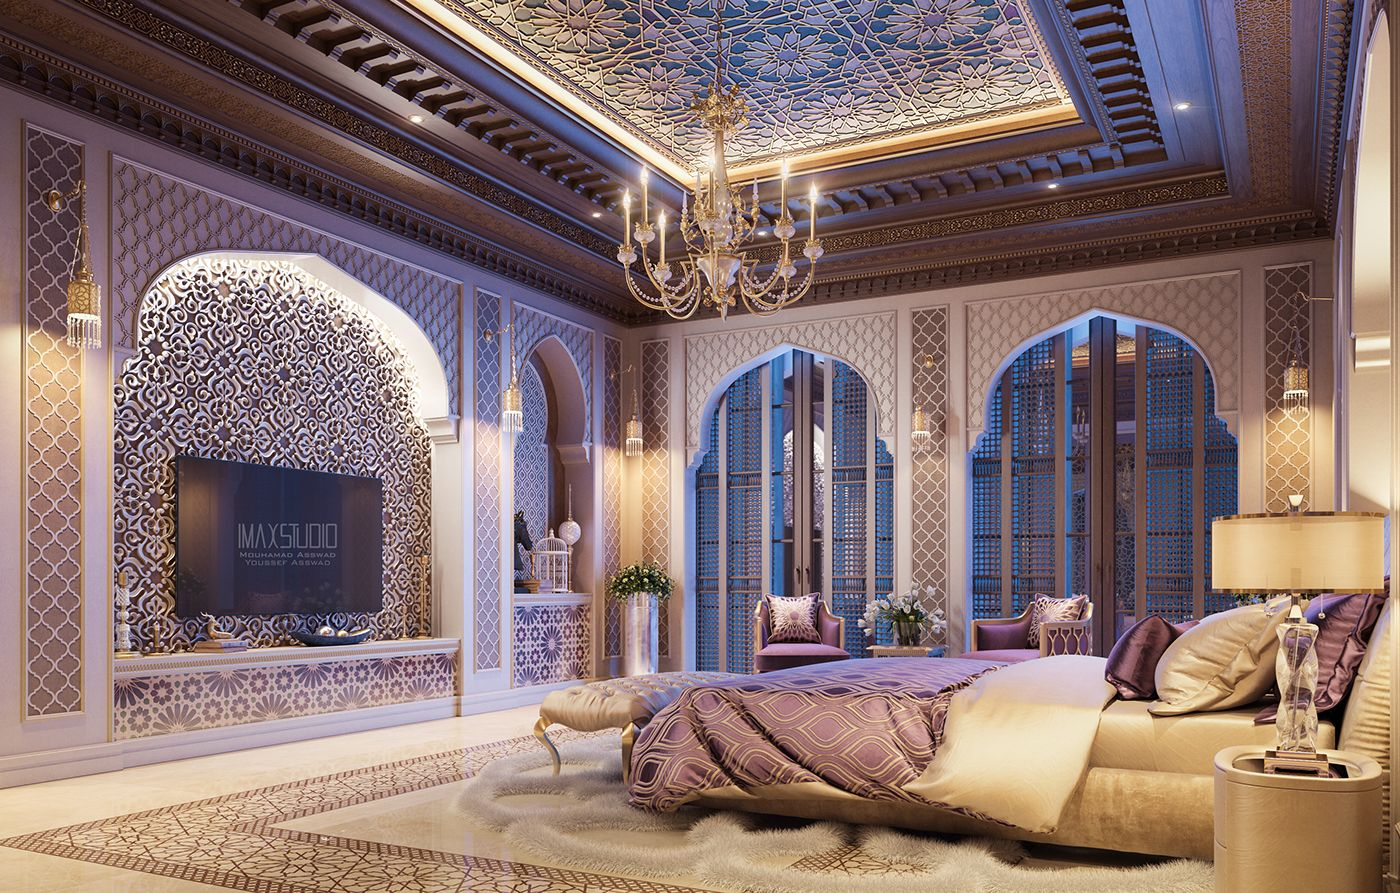 luxury master bedroom with images luxury bedroom on dreamy luxurious master bedroom designs and decor ideas id=65021